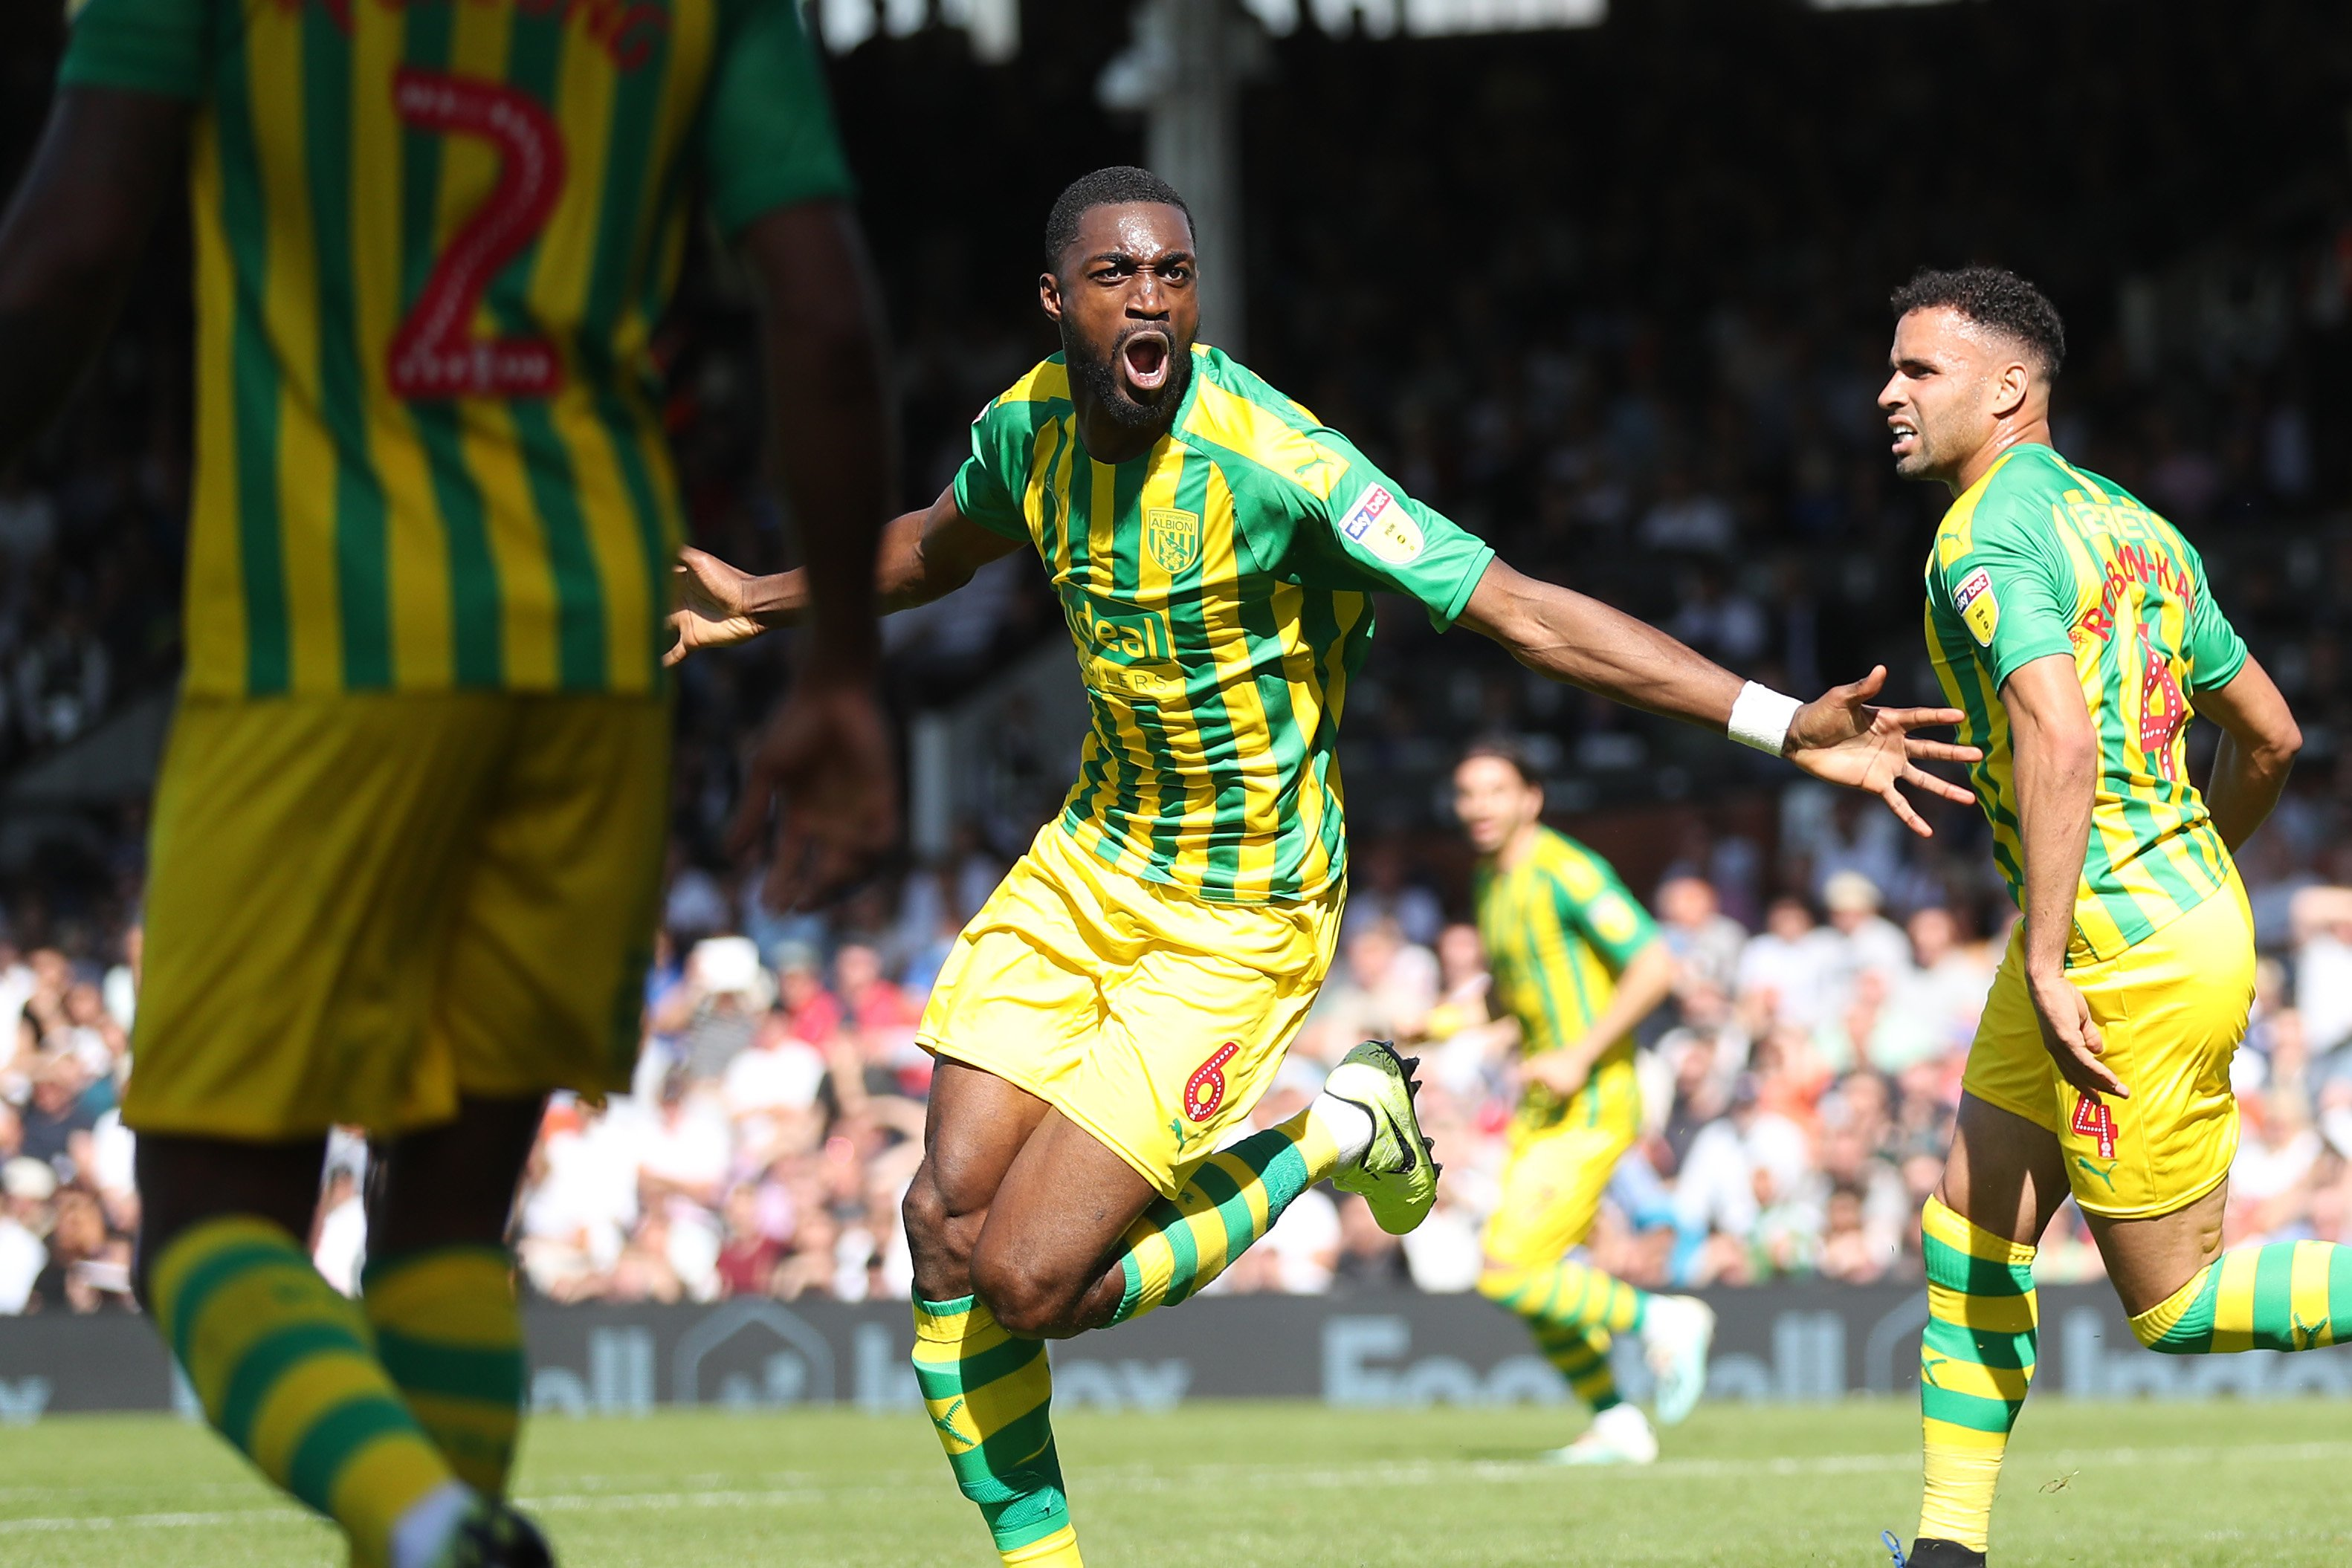 Ajayi: It's Amazing To Score My First West Brom Goal